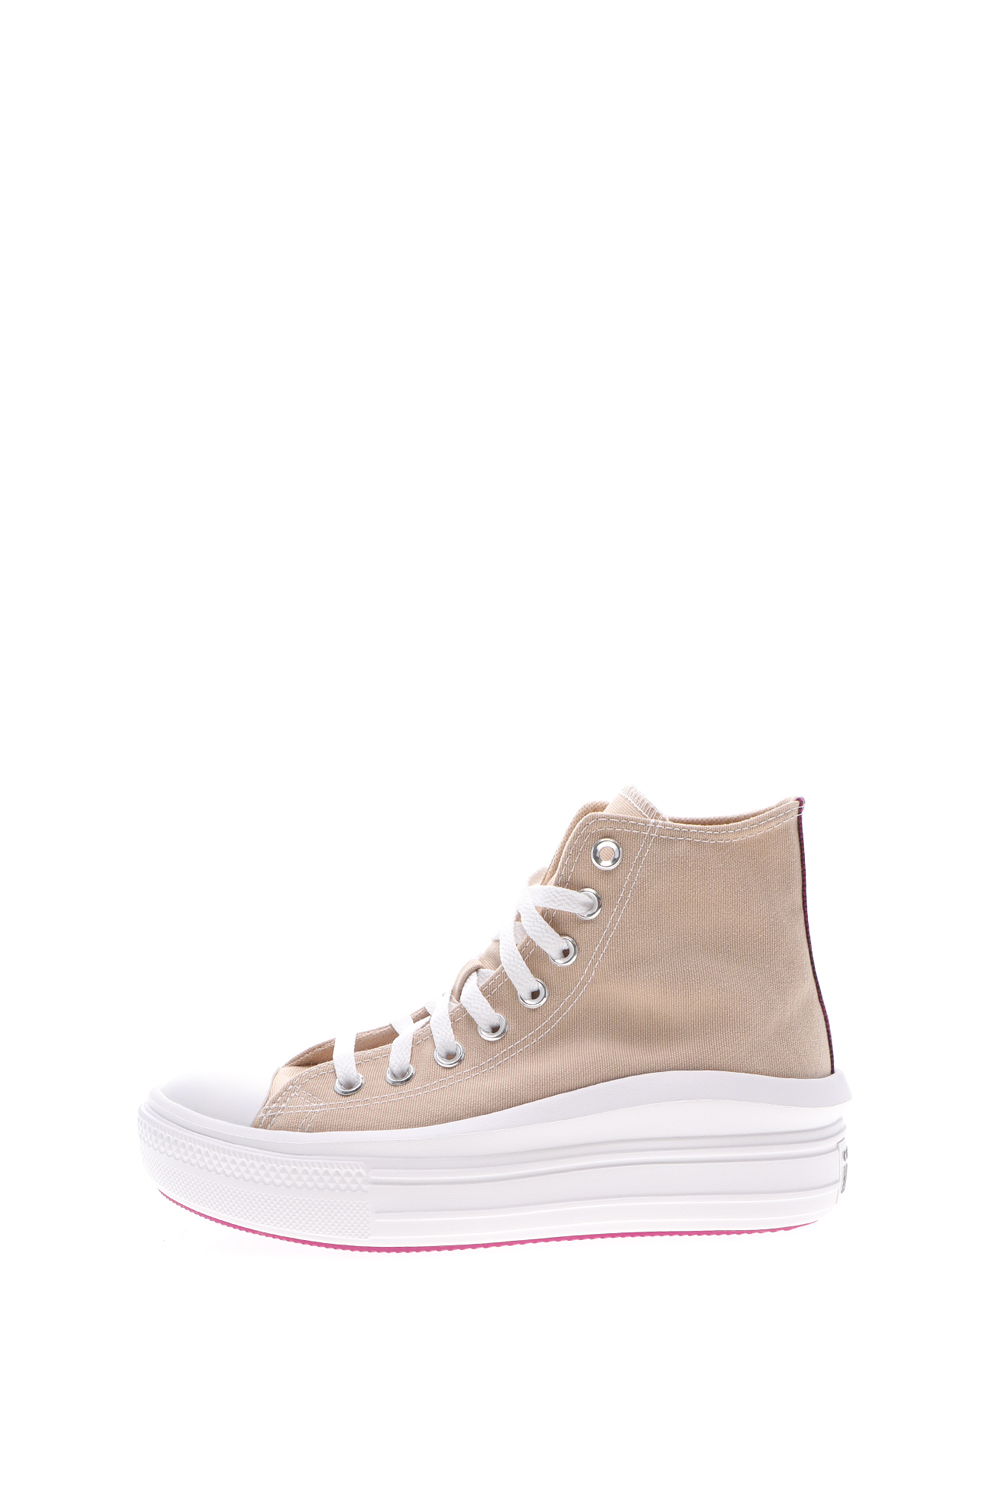 CONVERSE - Γυναικεία sneakers CONVERSE Chuck Taylor All Star Move καφέ